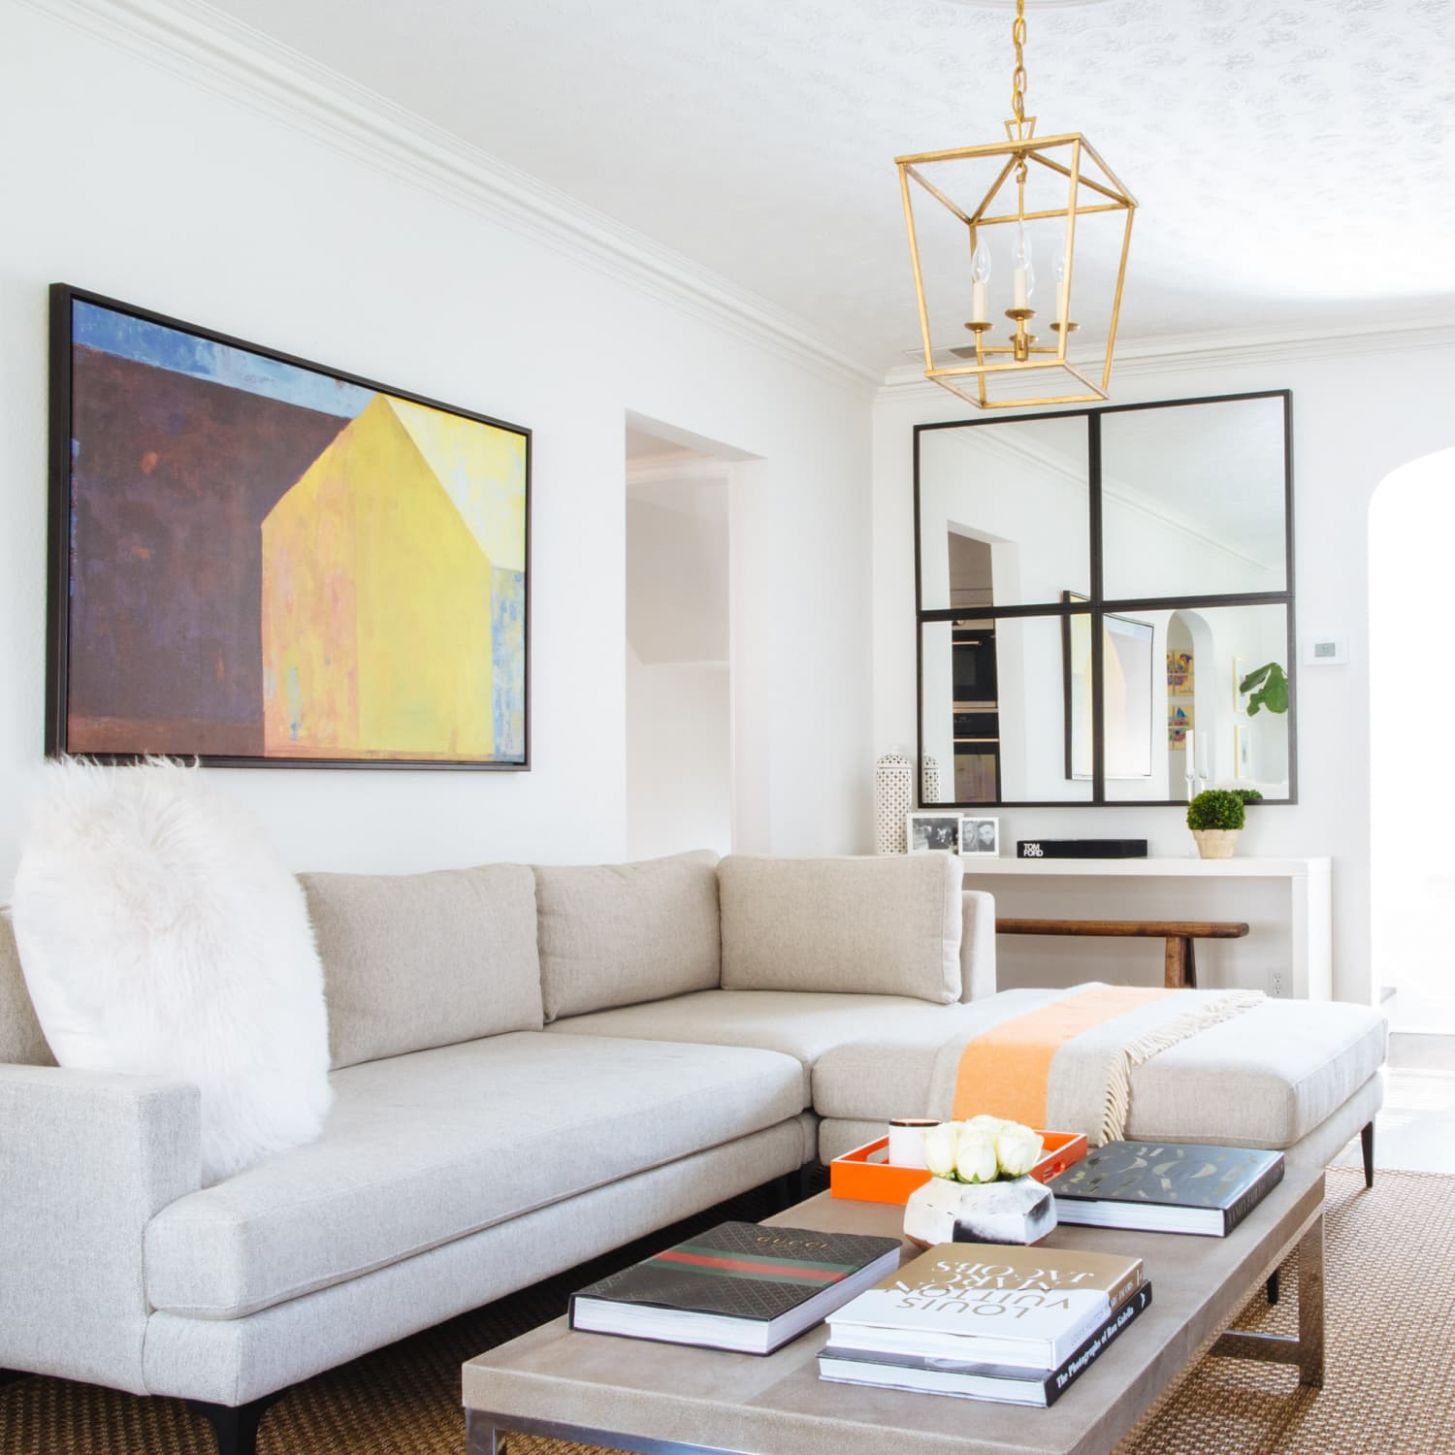 How To Get a High End Living Room Look on a Budget | Apartment Therapy - apartment therapy decor ideas